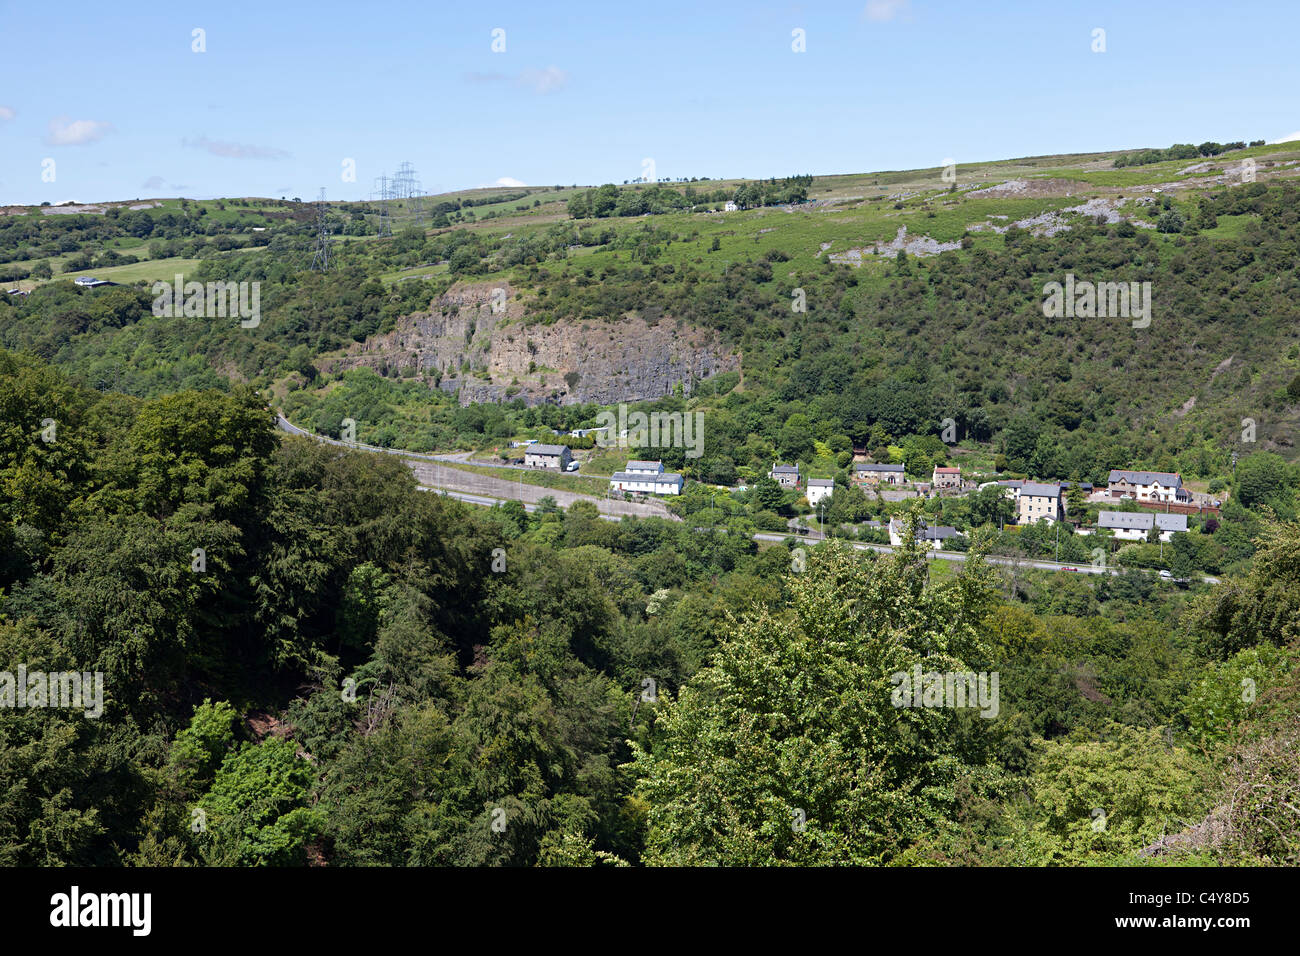 Blackrock village in the Clydach Gorge with the Heads of the Valleys road Wales UK - Stock Image